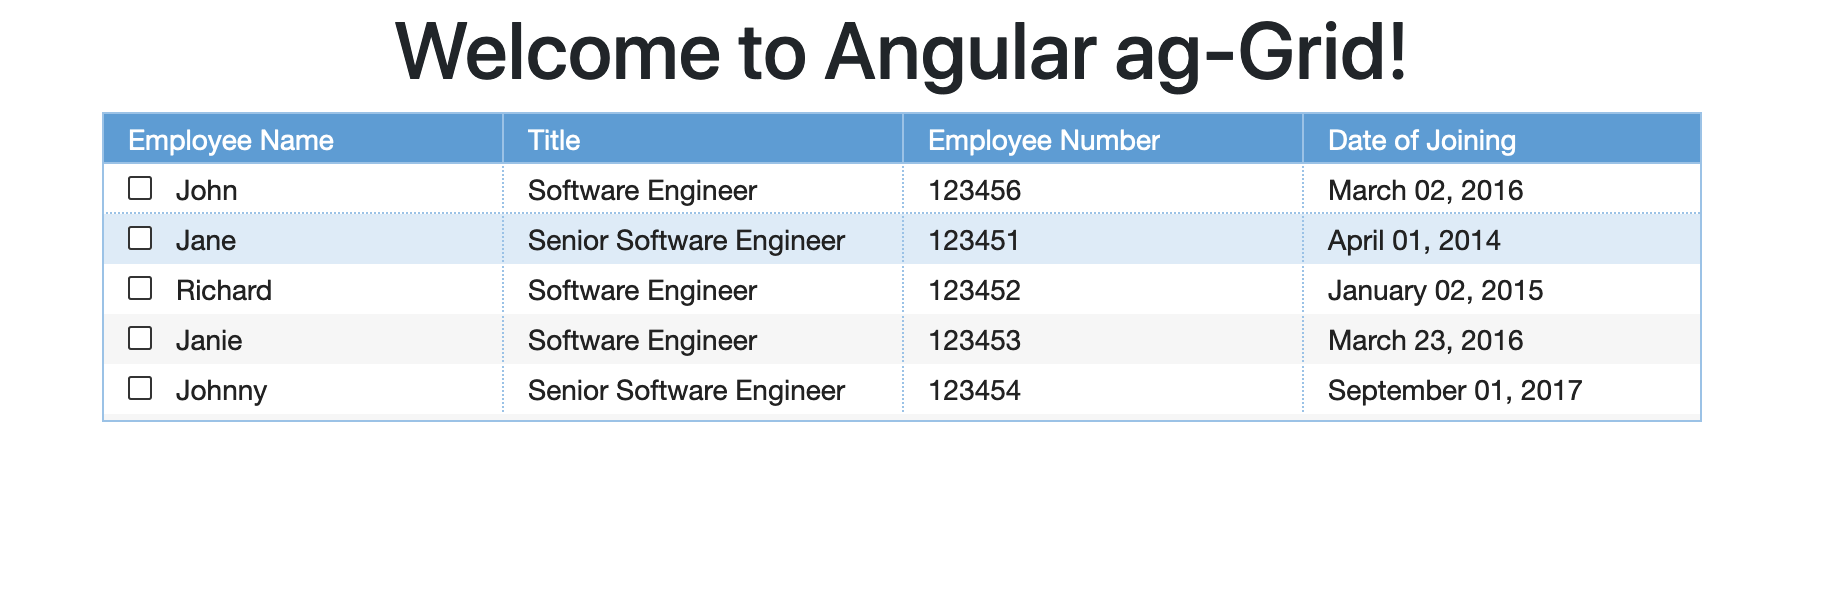 Introduction to Angular Grid - Noteworthy - The Journal Blog